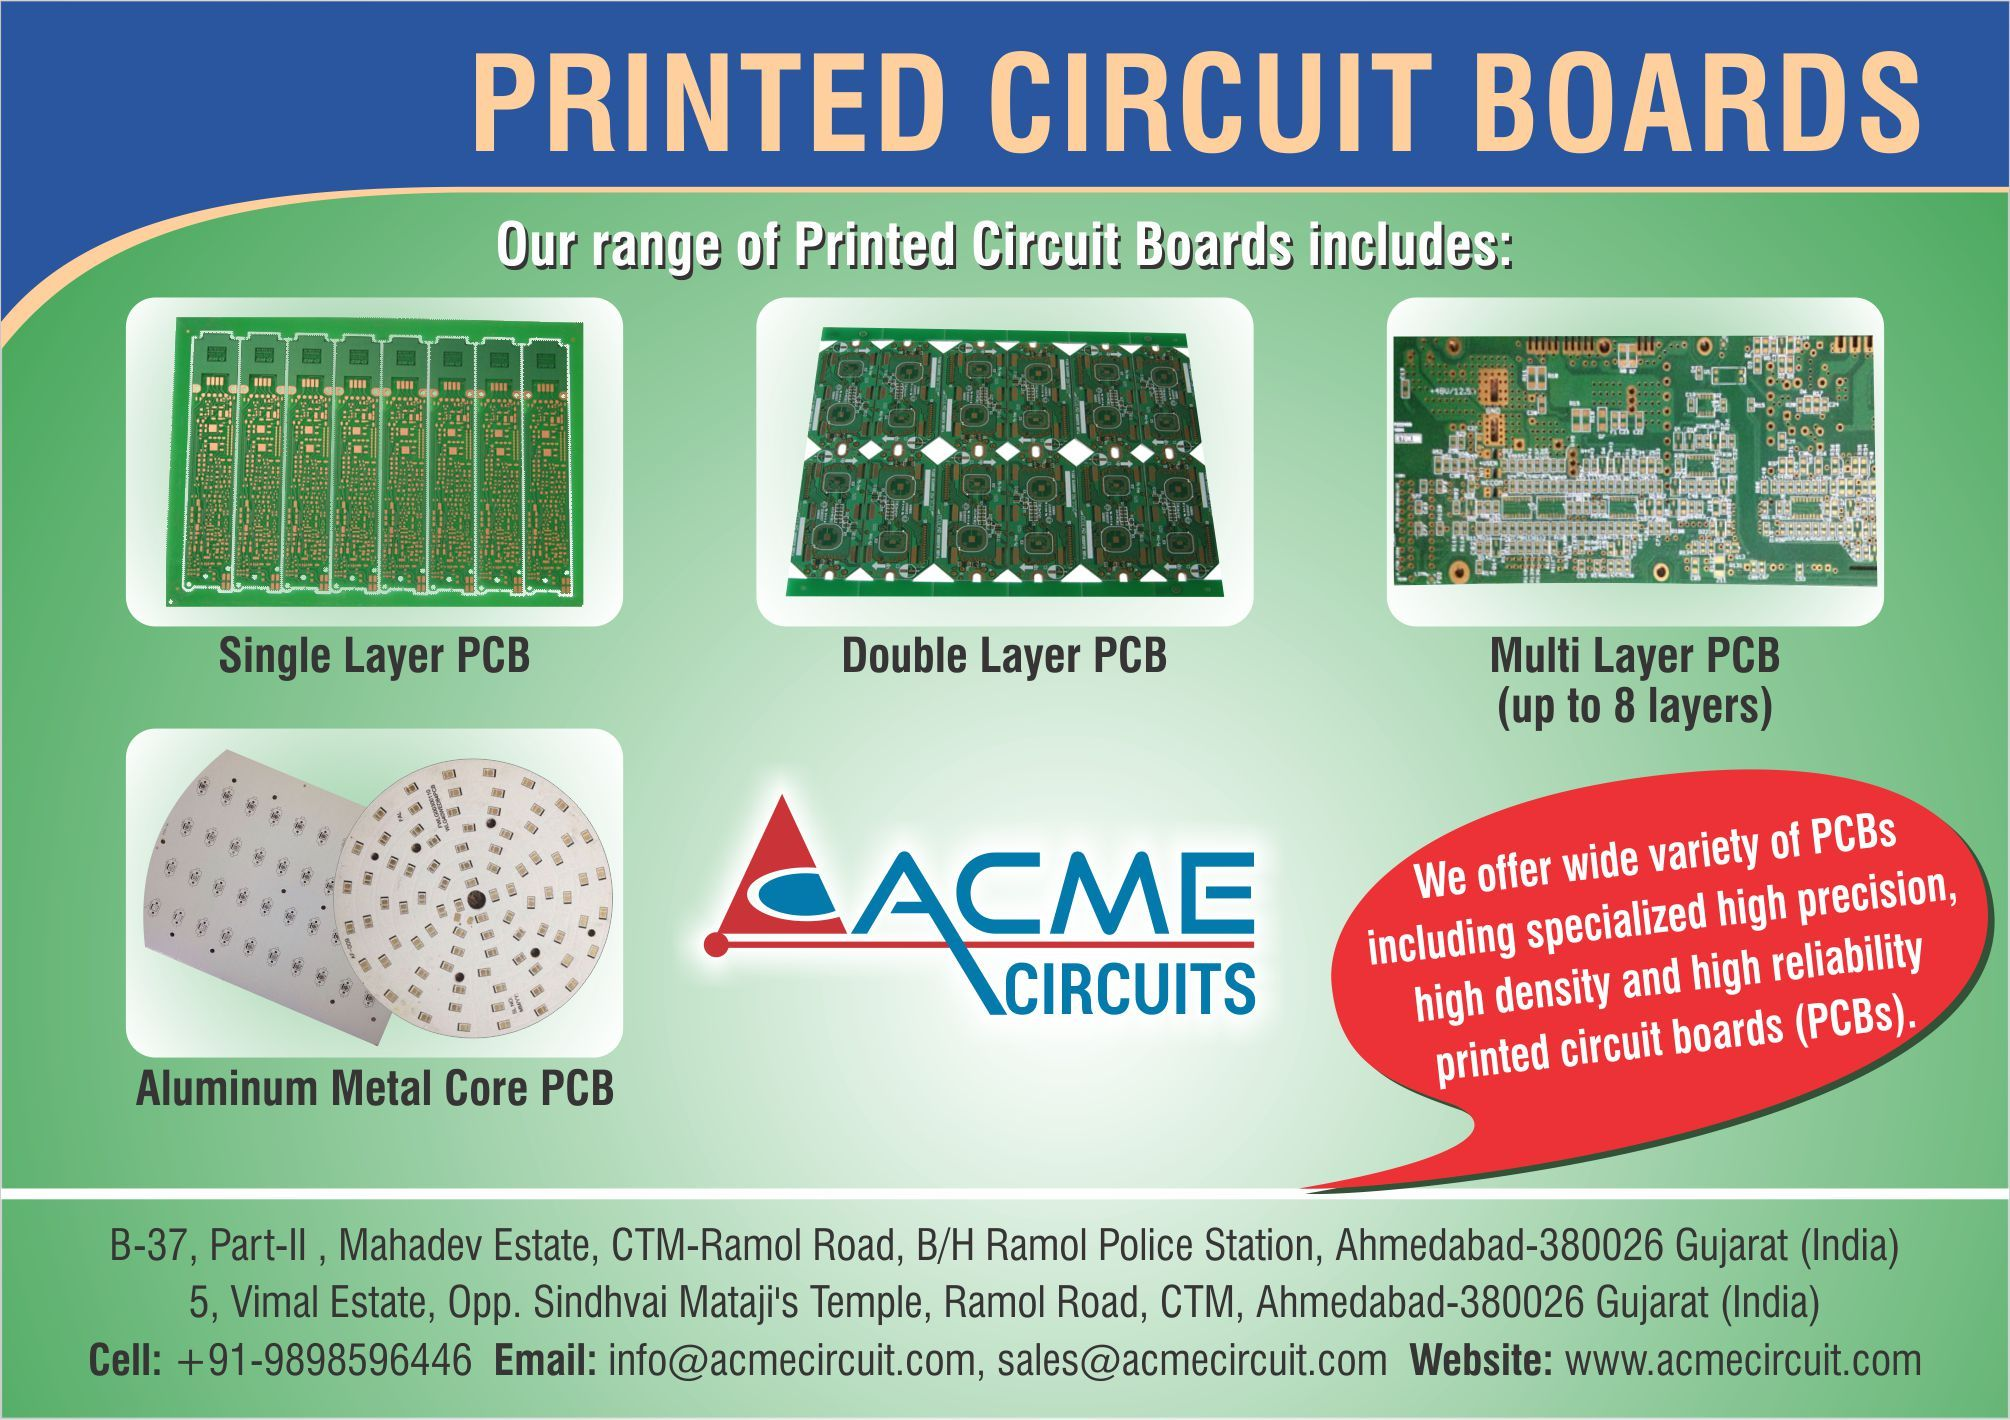 We are a prominent manufacturer, supplier and exporter of